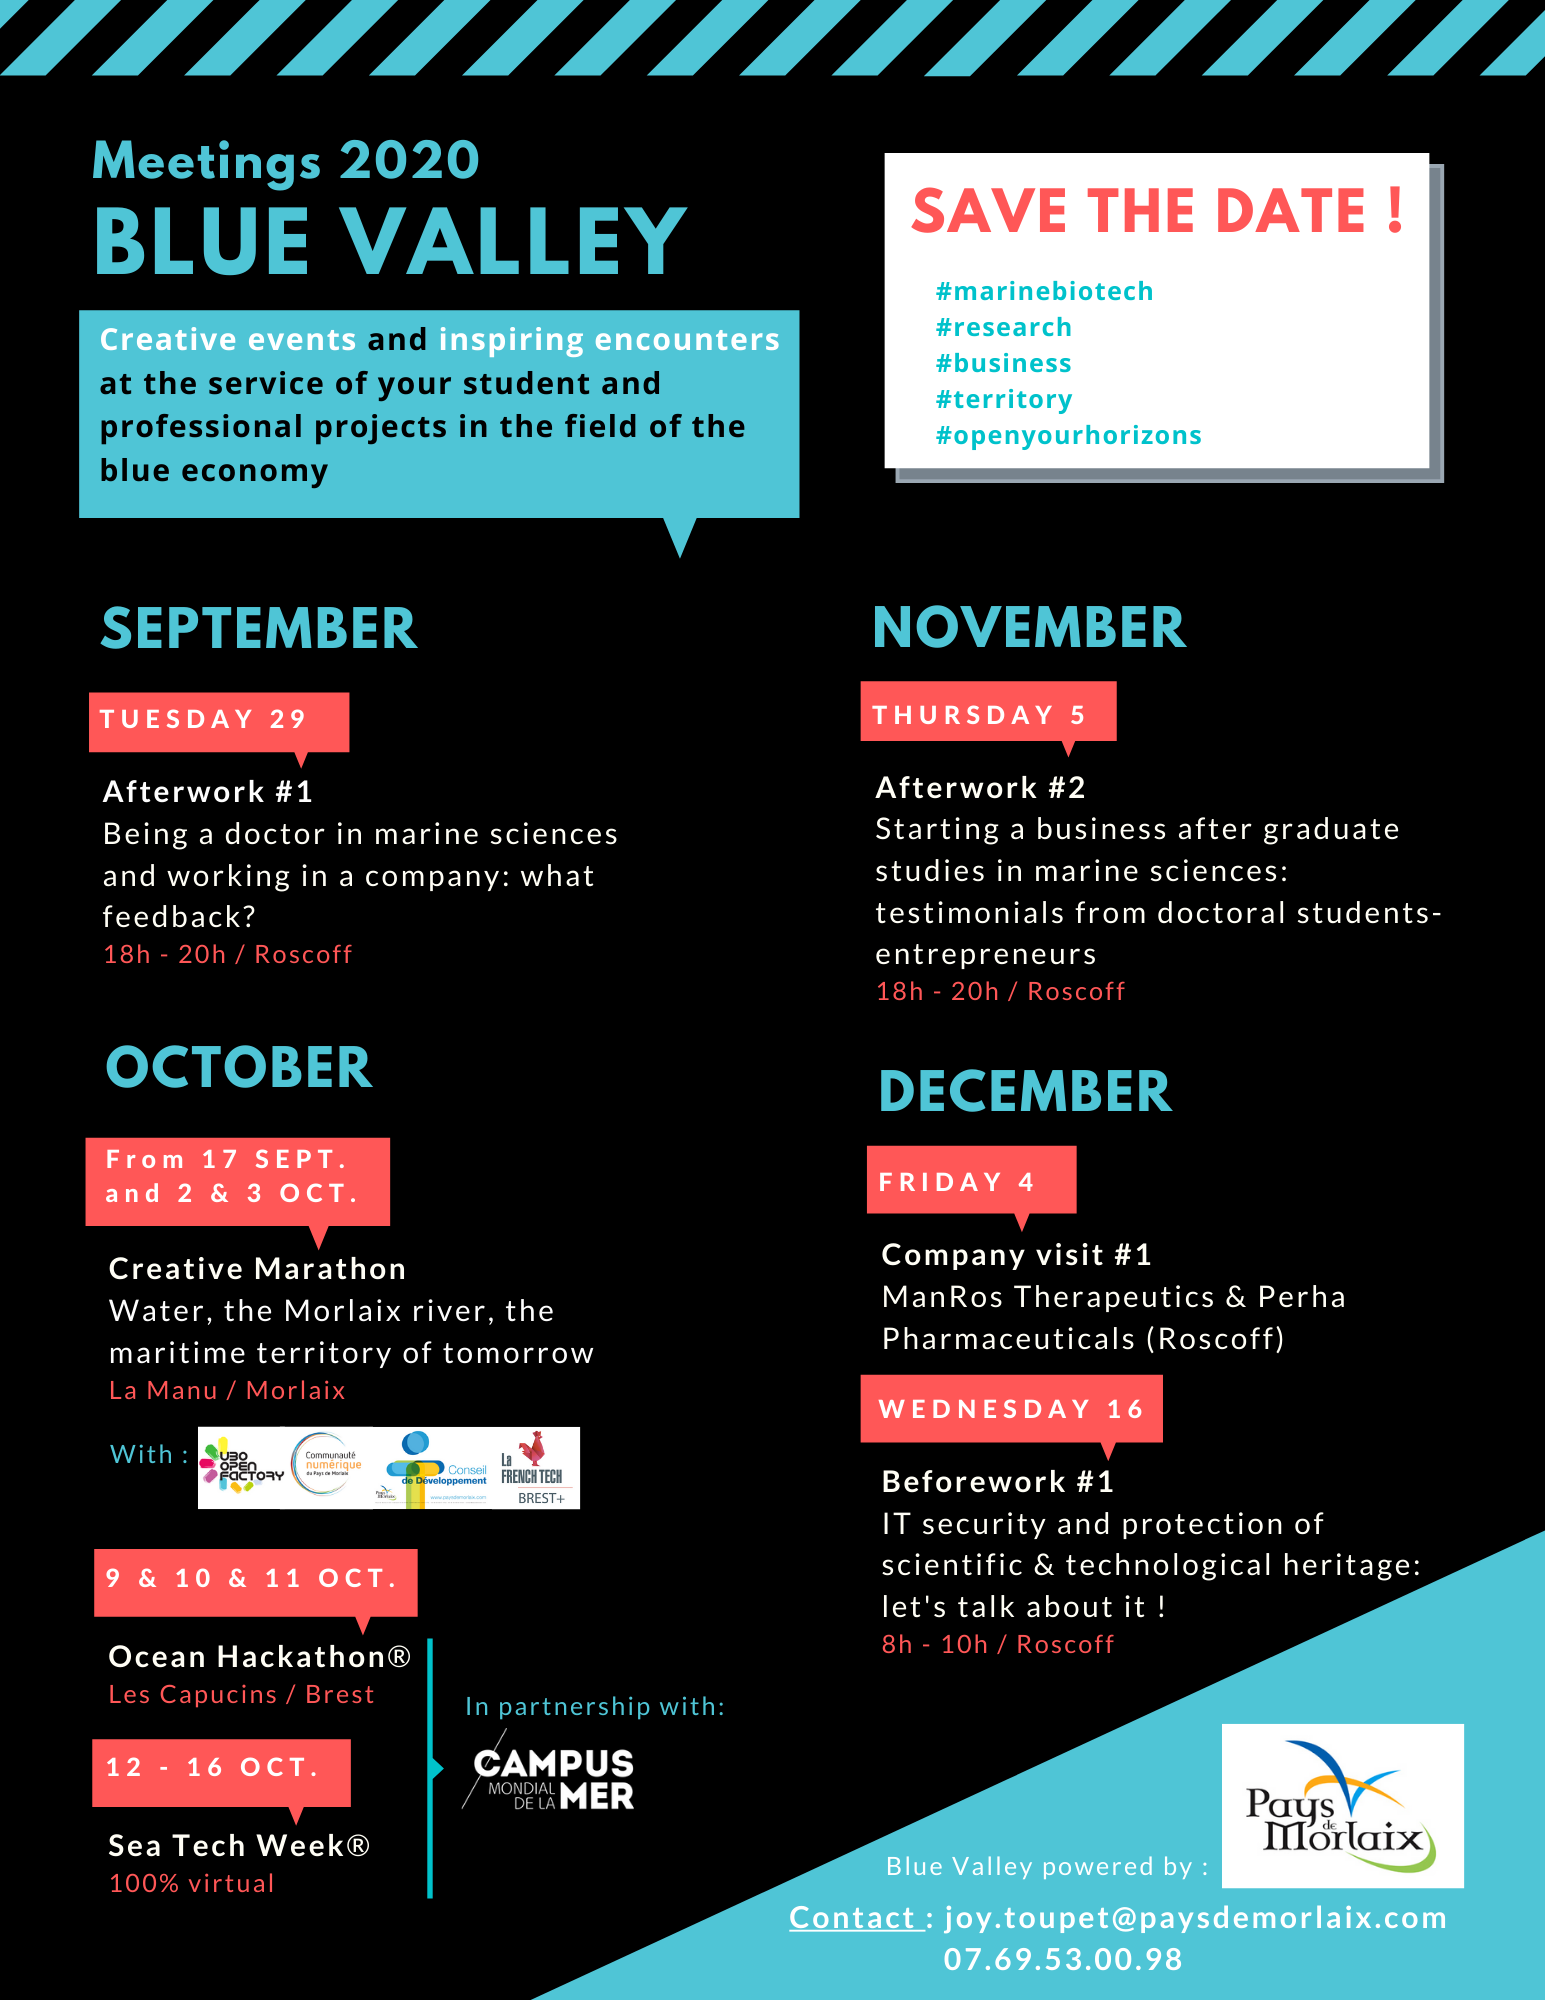 Blue Valley 2020 meetings programme